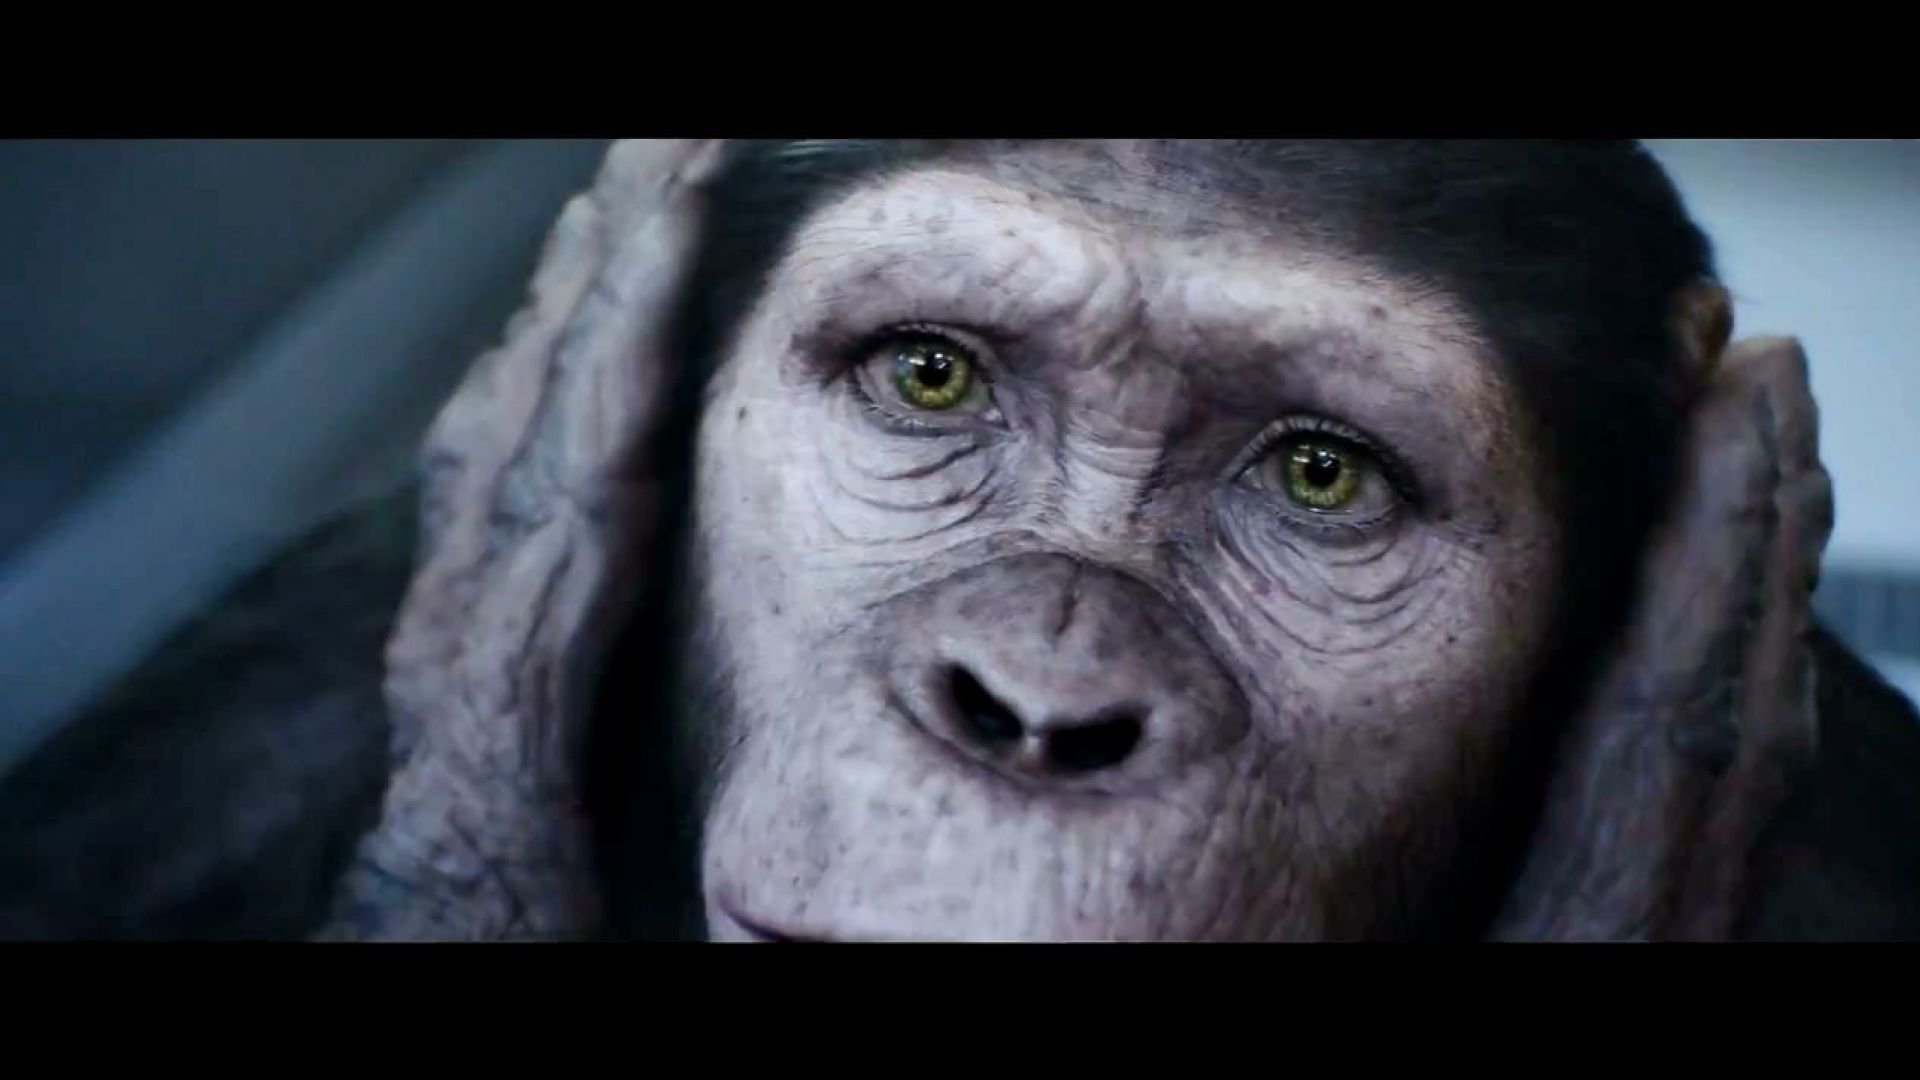 You make history. I make money. Rise of the Planet of the Apes